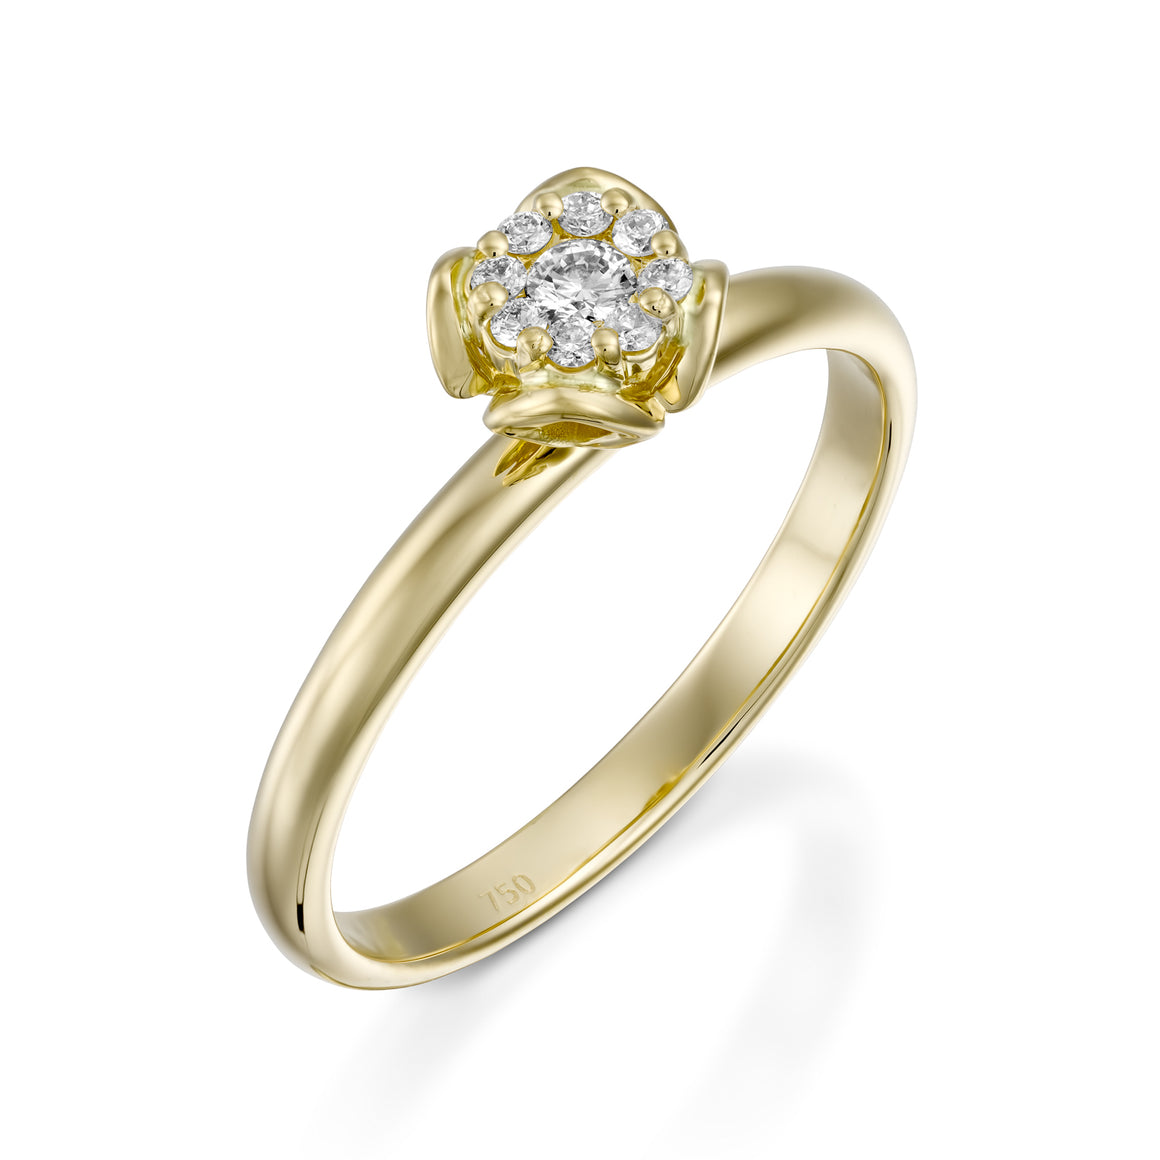 0.12 carat Yellow gold flower diamond engagement ring for women - Petite Fleur